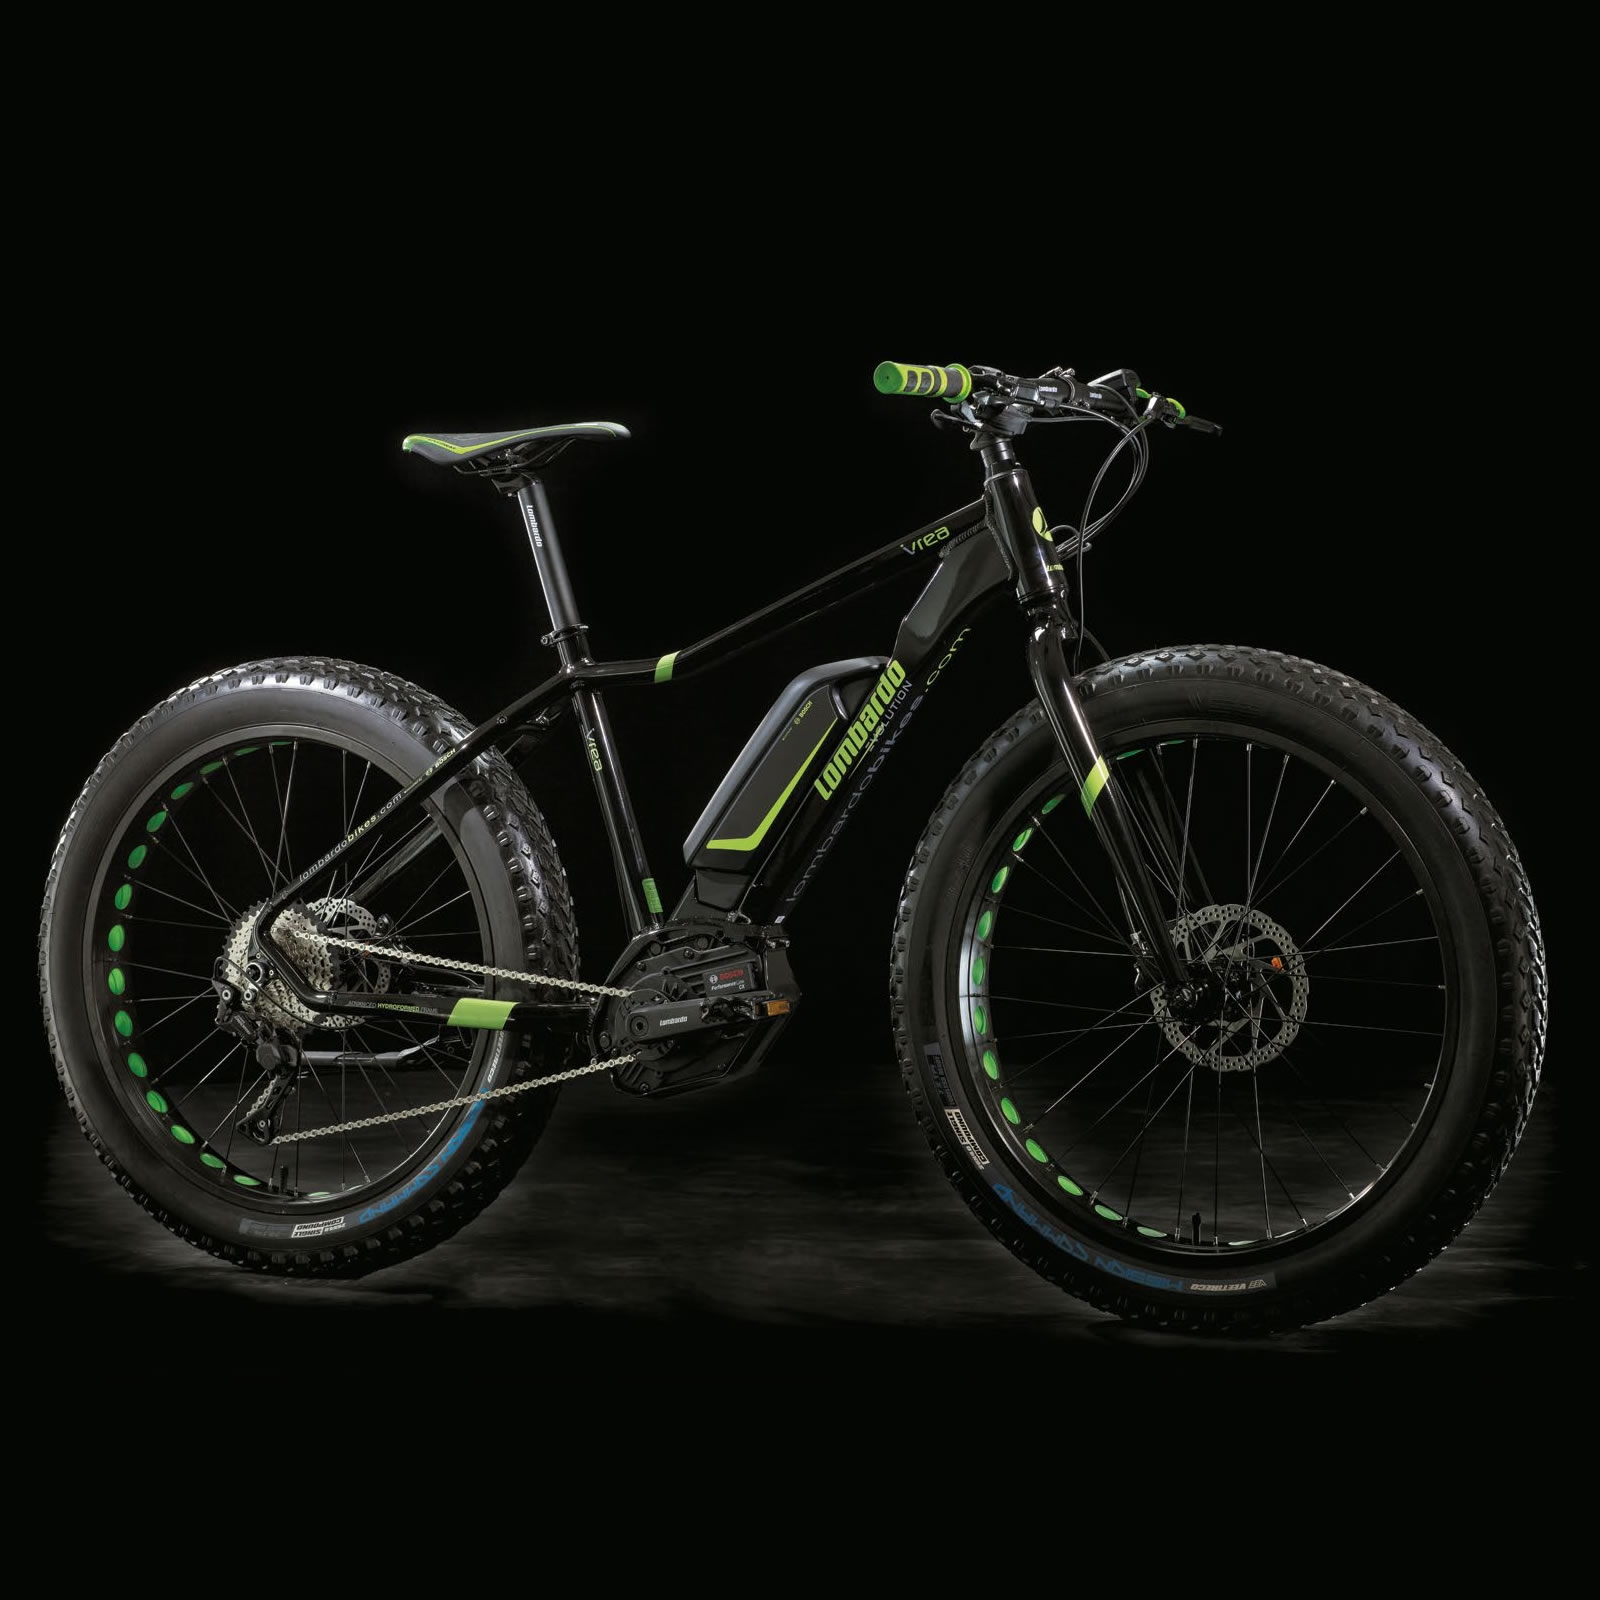 Lombardo Bici Elettrica Fat Bike E Ivrea Fat 26 Bosch Performance Cx 400 Wh 2018 E Shop